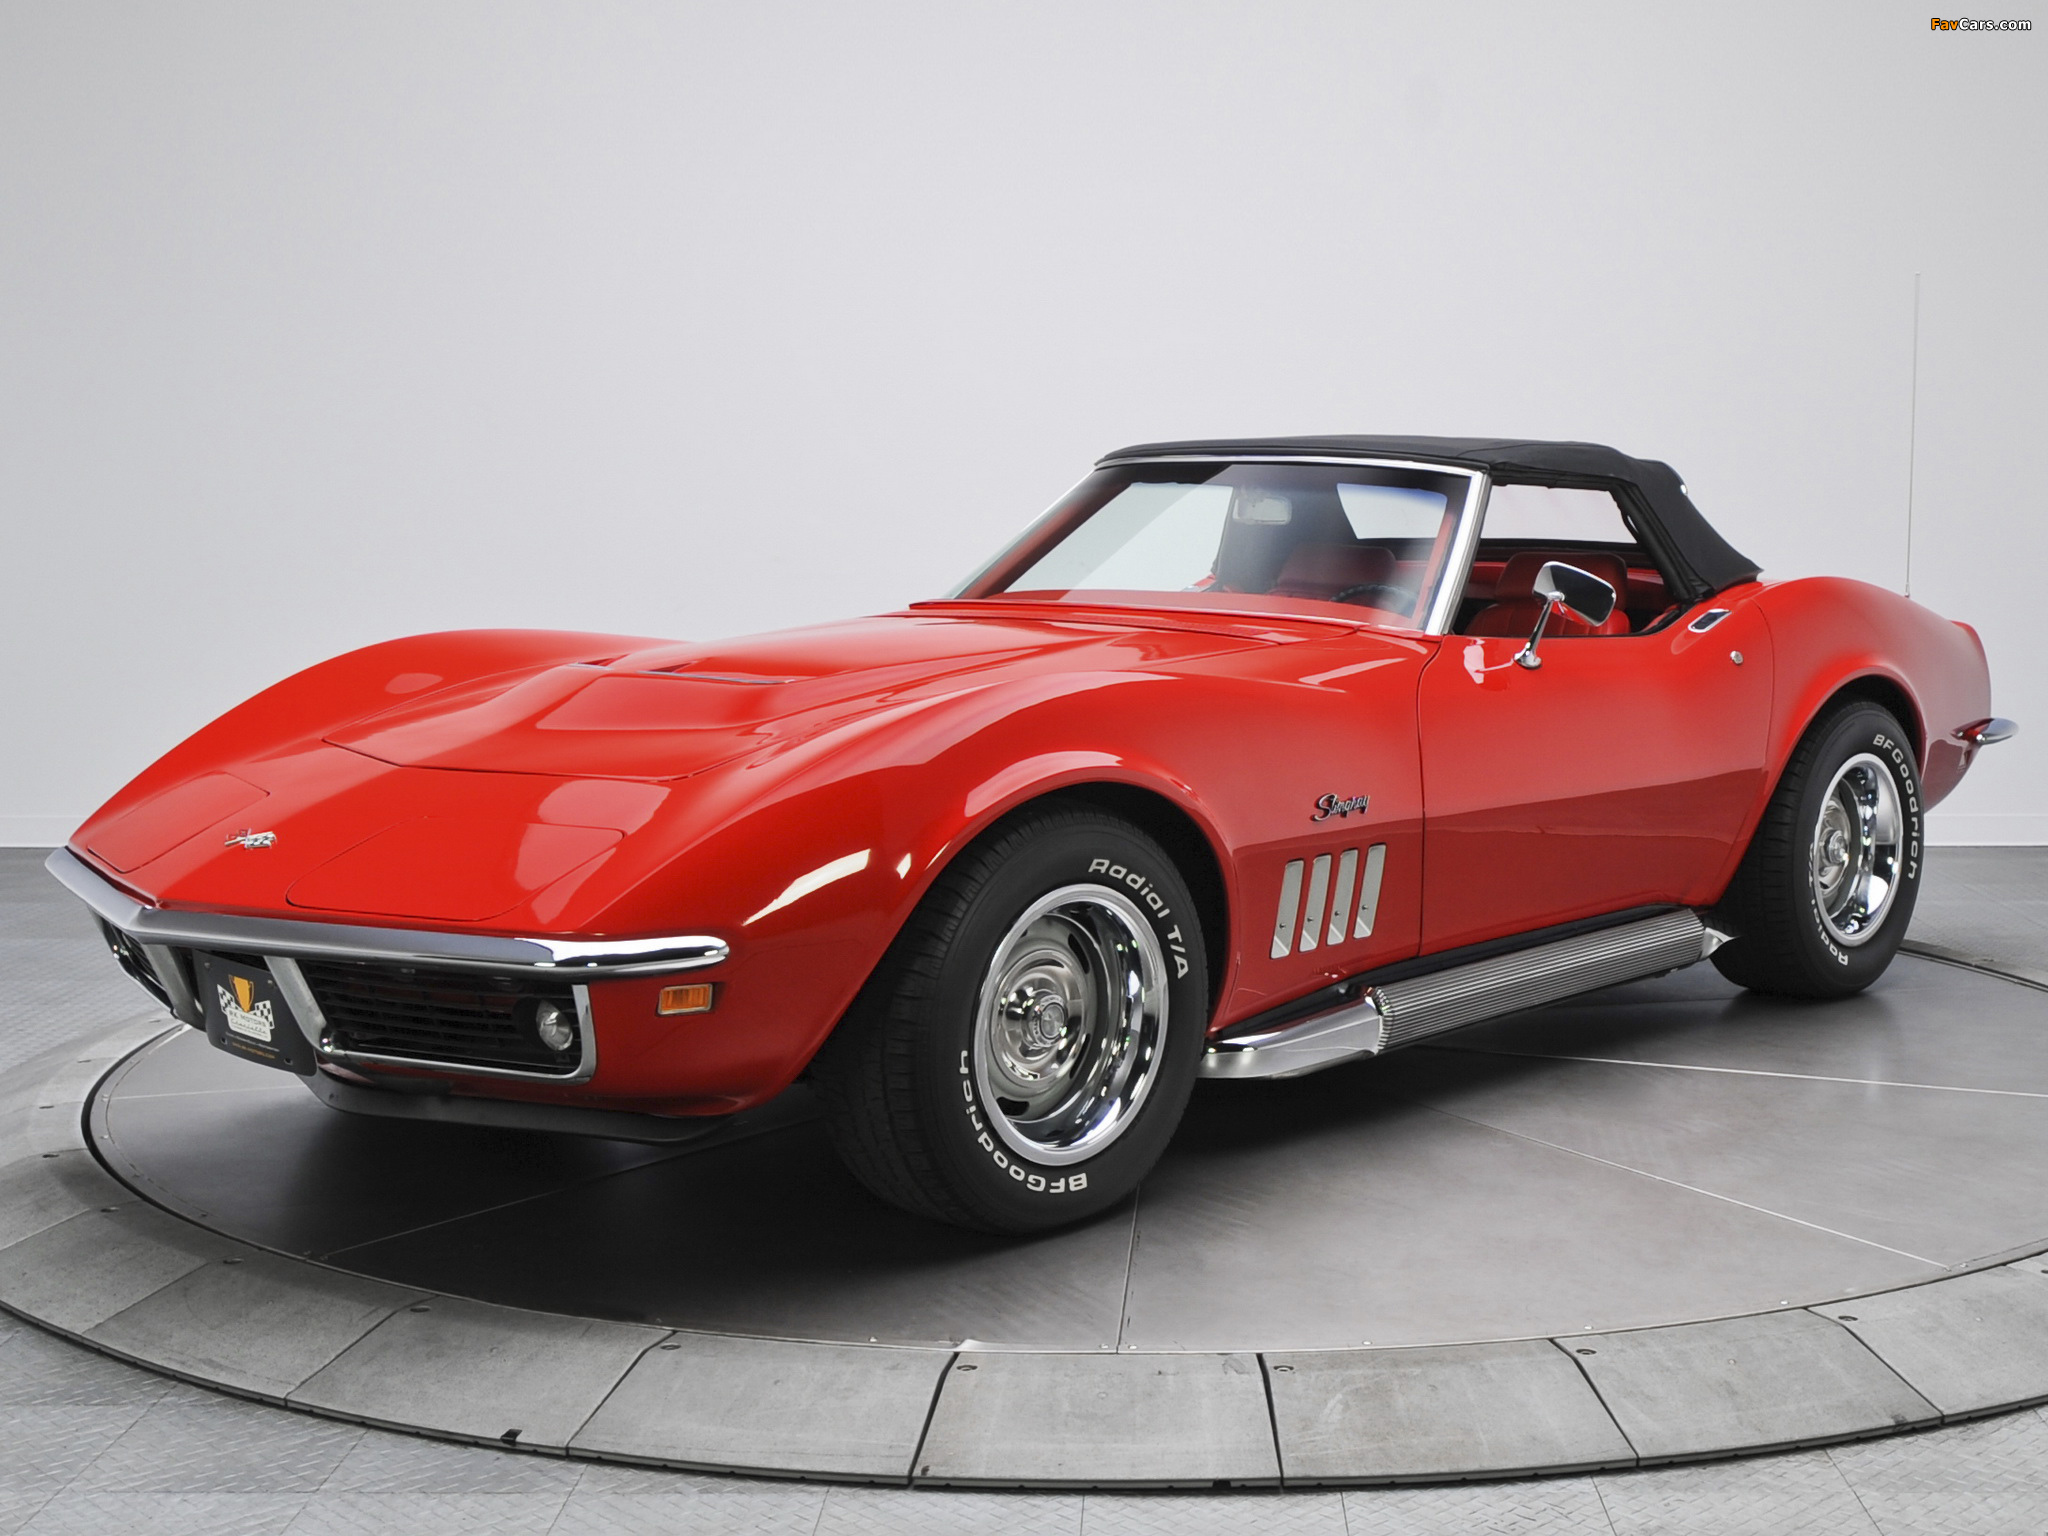 photos of corvette stingray l46 350 convertible c3 1969 2048x1536. Black Bedroom Furniture Sets. Home Design Ideas